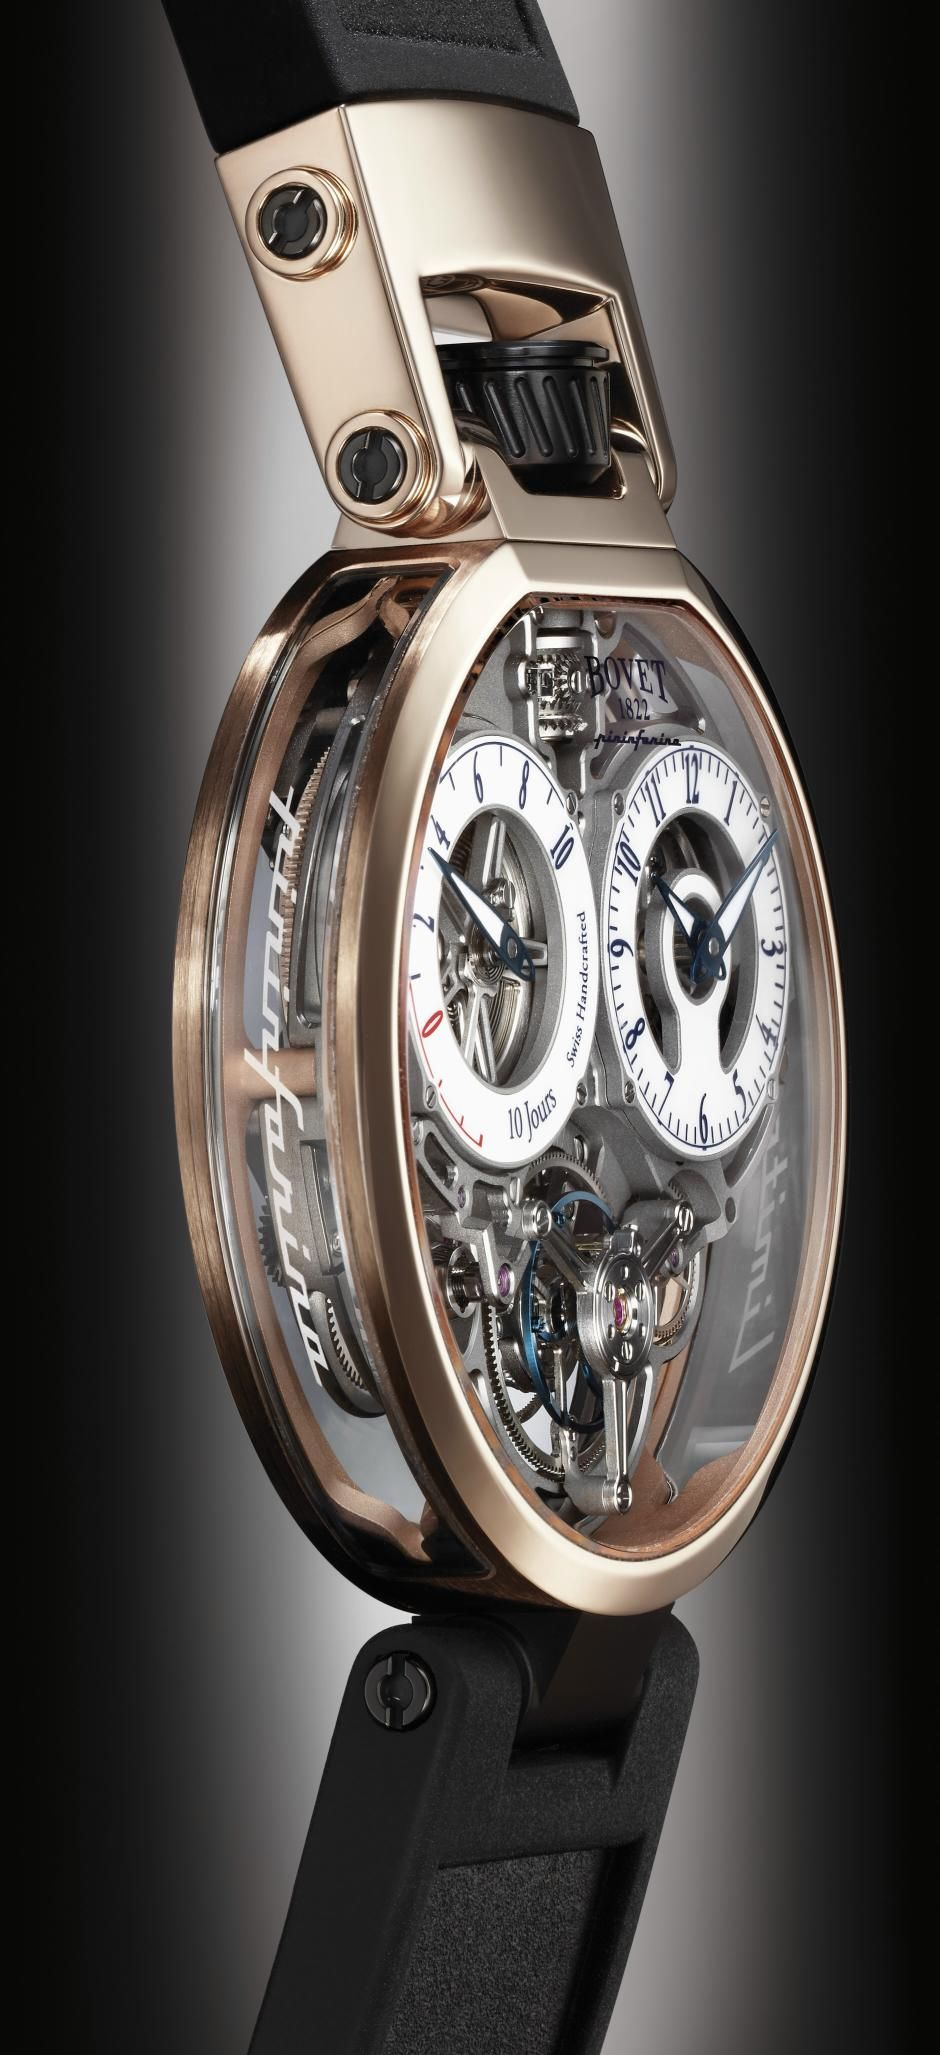 skeleton default tourbillon see jewelry view p en size front ca grey chanel watches flying image watch nocrop full